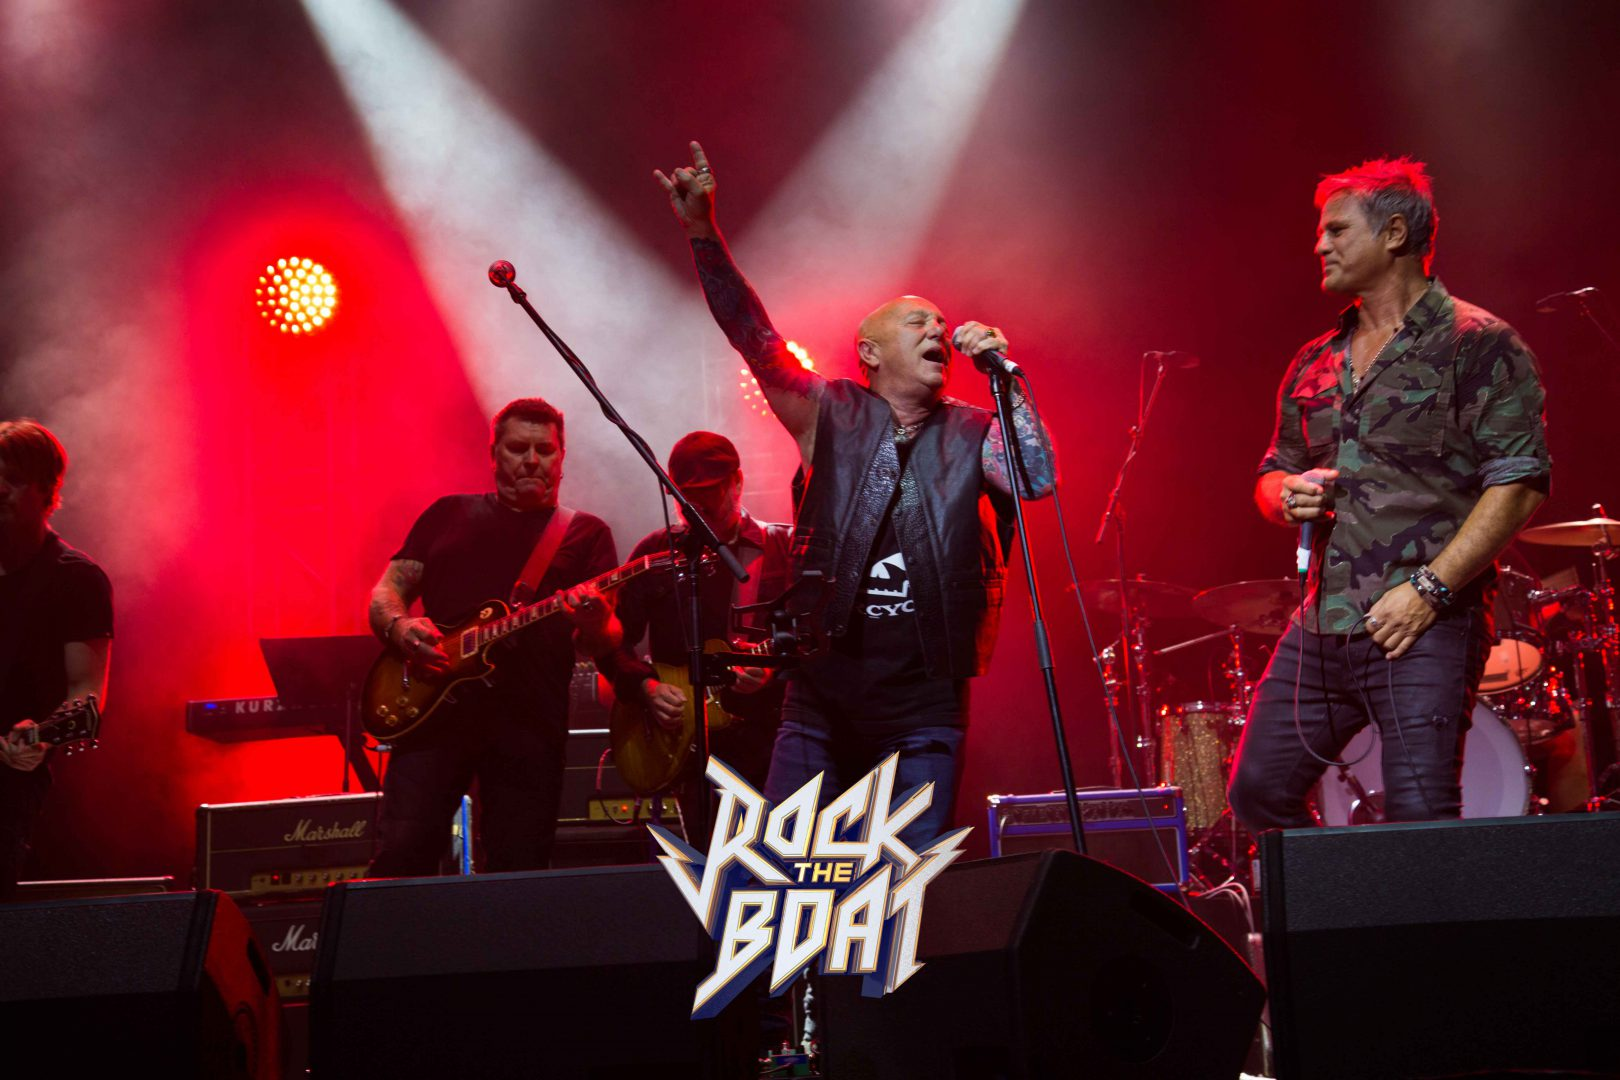 GALLERY: Rock the Boat 2017 Photos